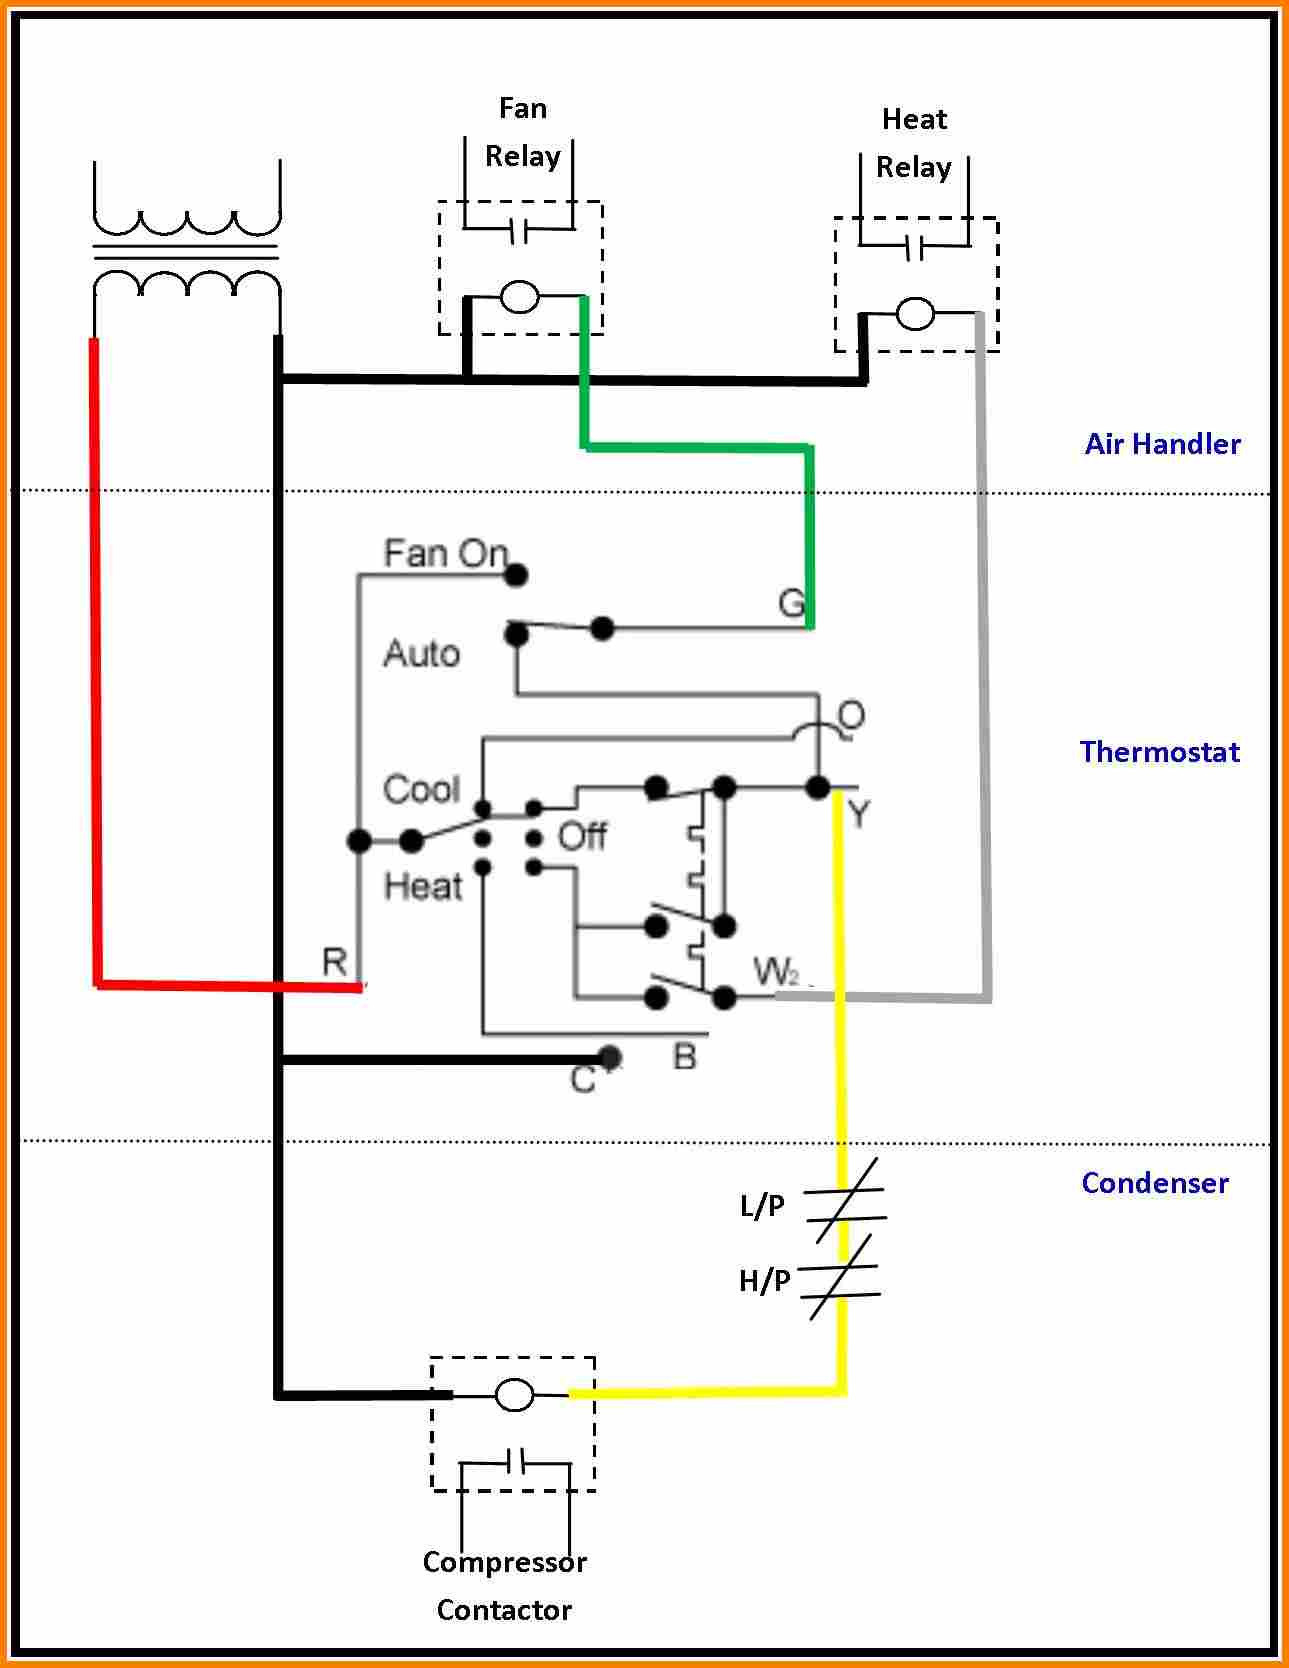 Mobile Home Electric Furnace Thermostat Wiring Diagram - 1972 Ford Turn  Signal Wiring for Wiring Diagram SchematicsWiring Diagram Schematics